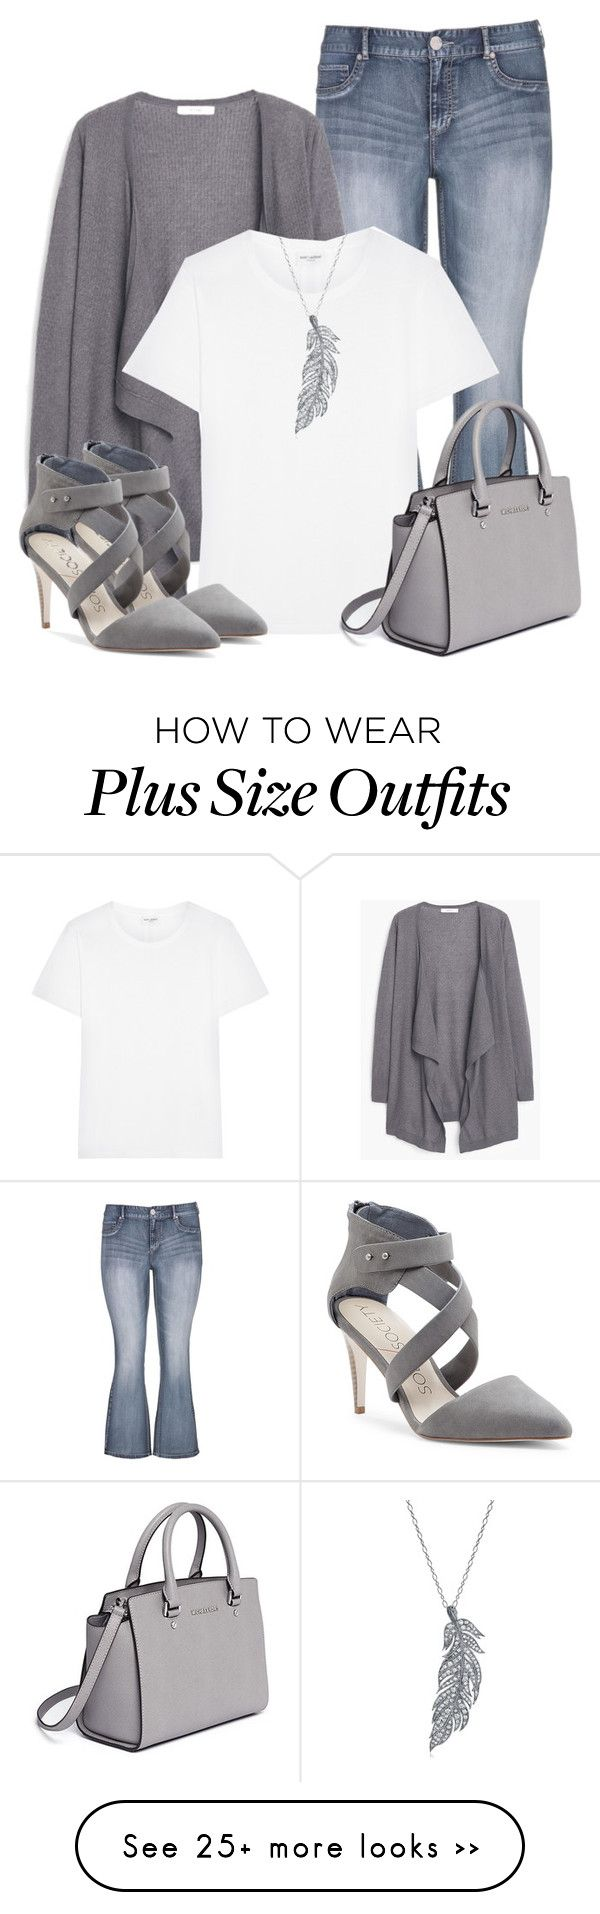 """""""White Tee Shirt and Jeans"""" by lchar on Polyvore featuring maurices, MANGO, Yves Saint Laurent, Stone Paris, MICHAEL Michael Kors and Sole Society"""